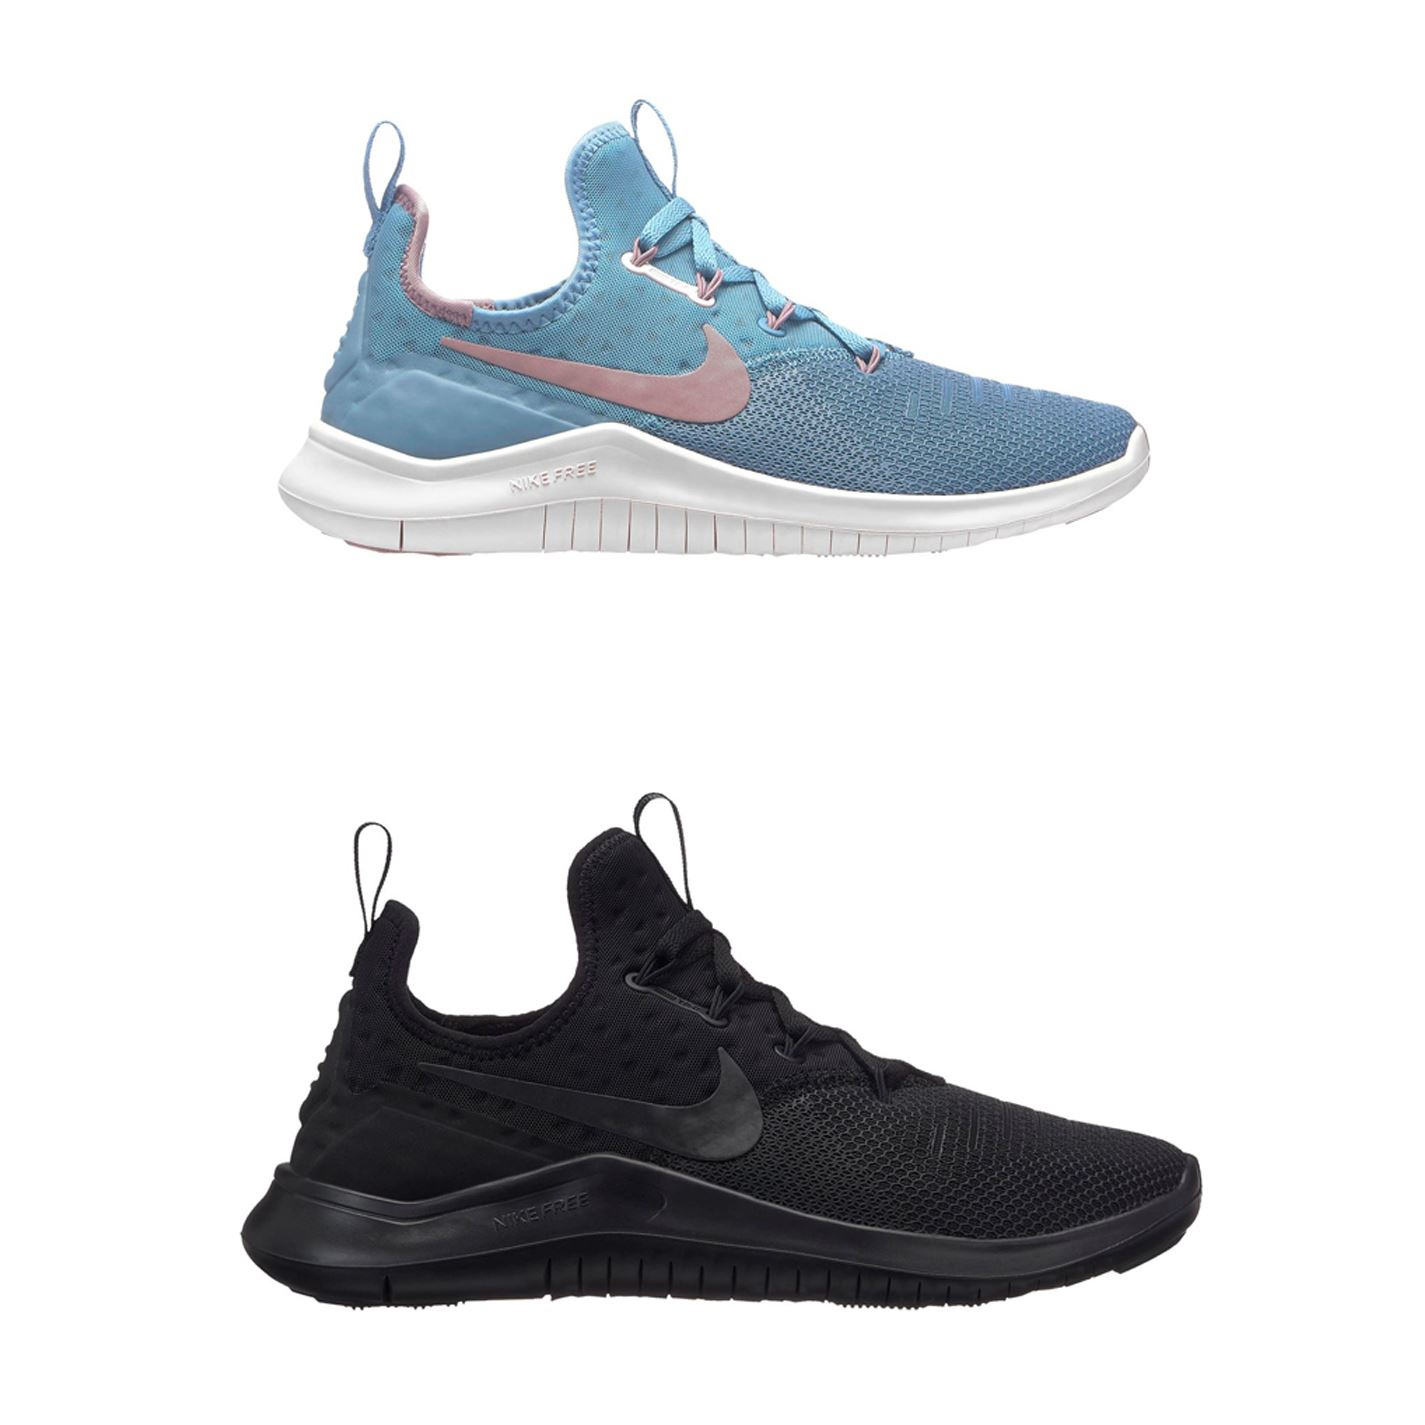 646a0a6f8d7a ... Nike Free TR8 Training Shoes Womens Fitness Gym Workout Trainers  Sneakers ...